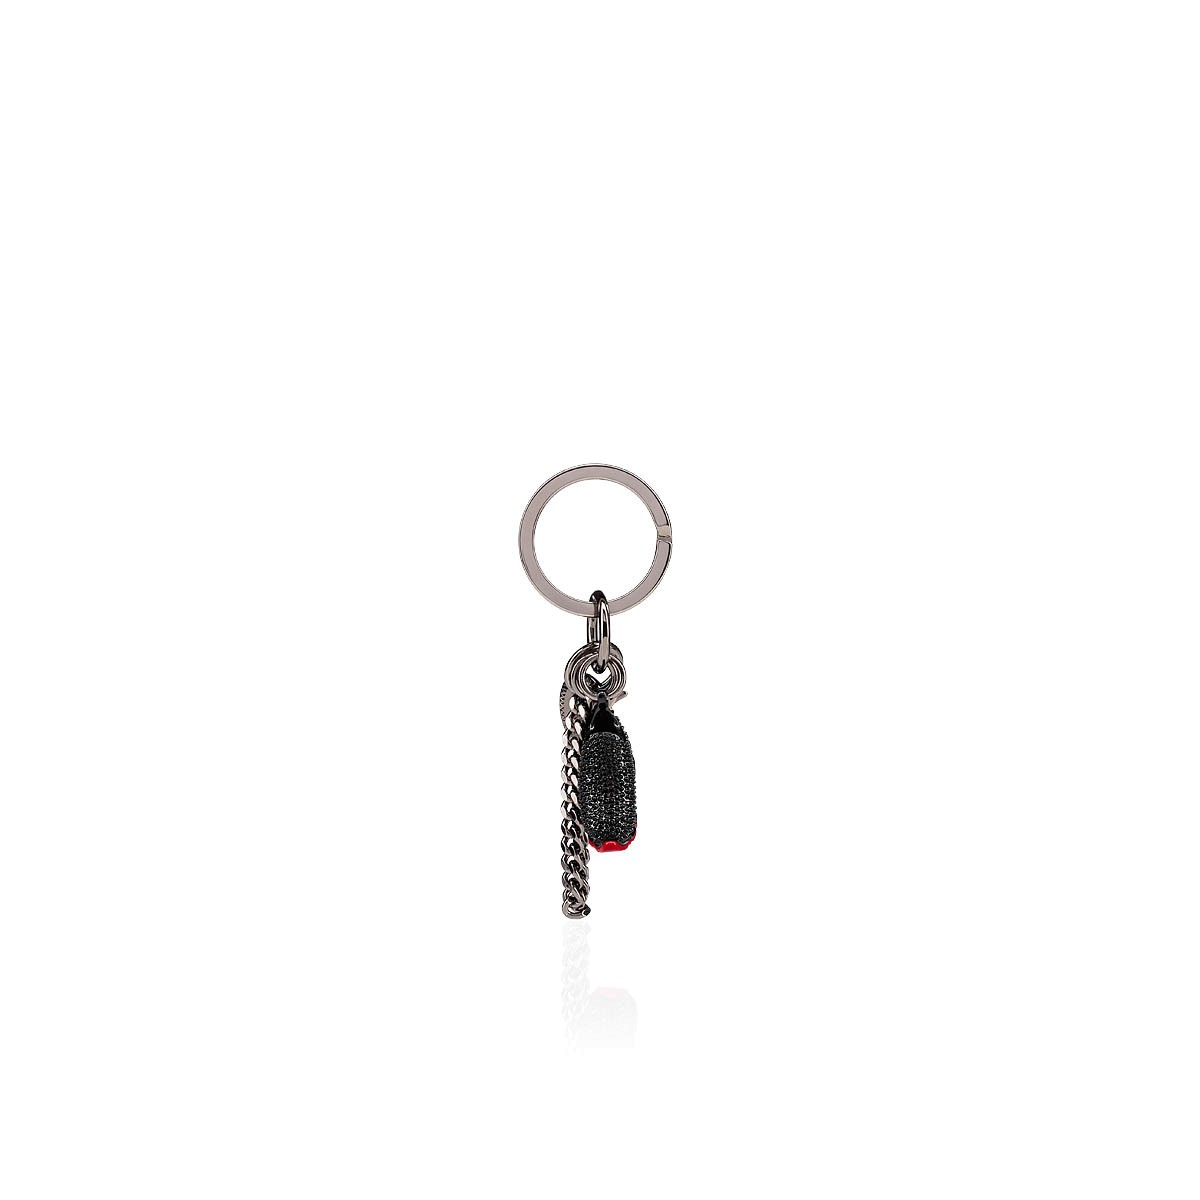 Small Leather Goods - Running Keyring - Christian Louboutin